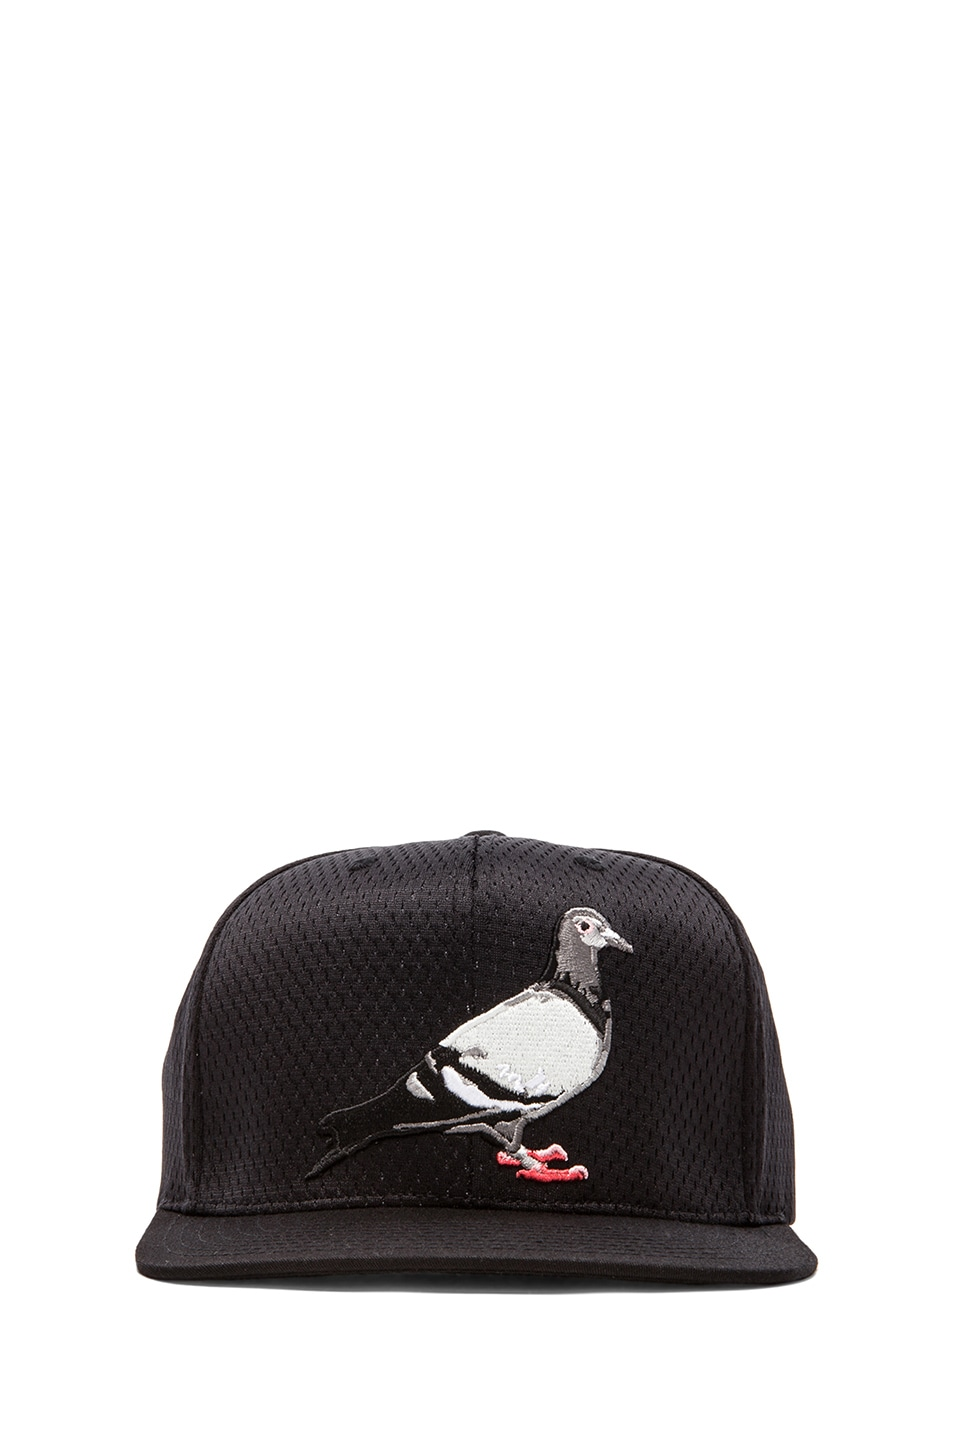 Staple Mesh M&N Pigeon Snapback in Black